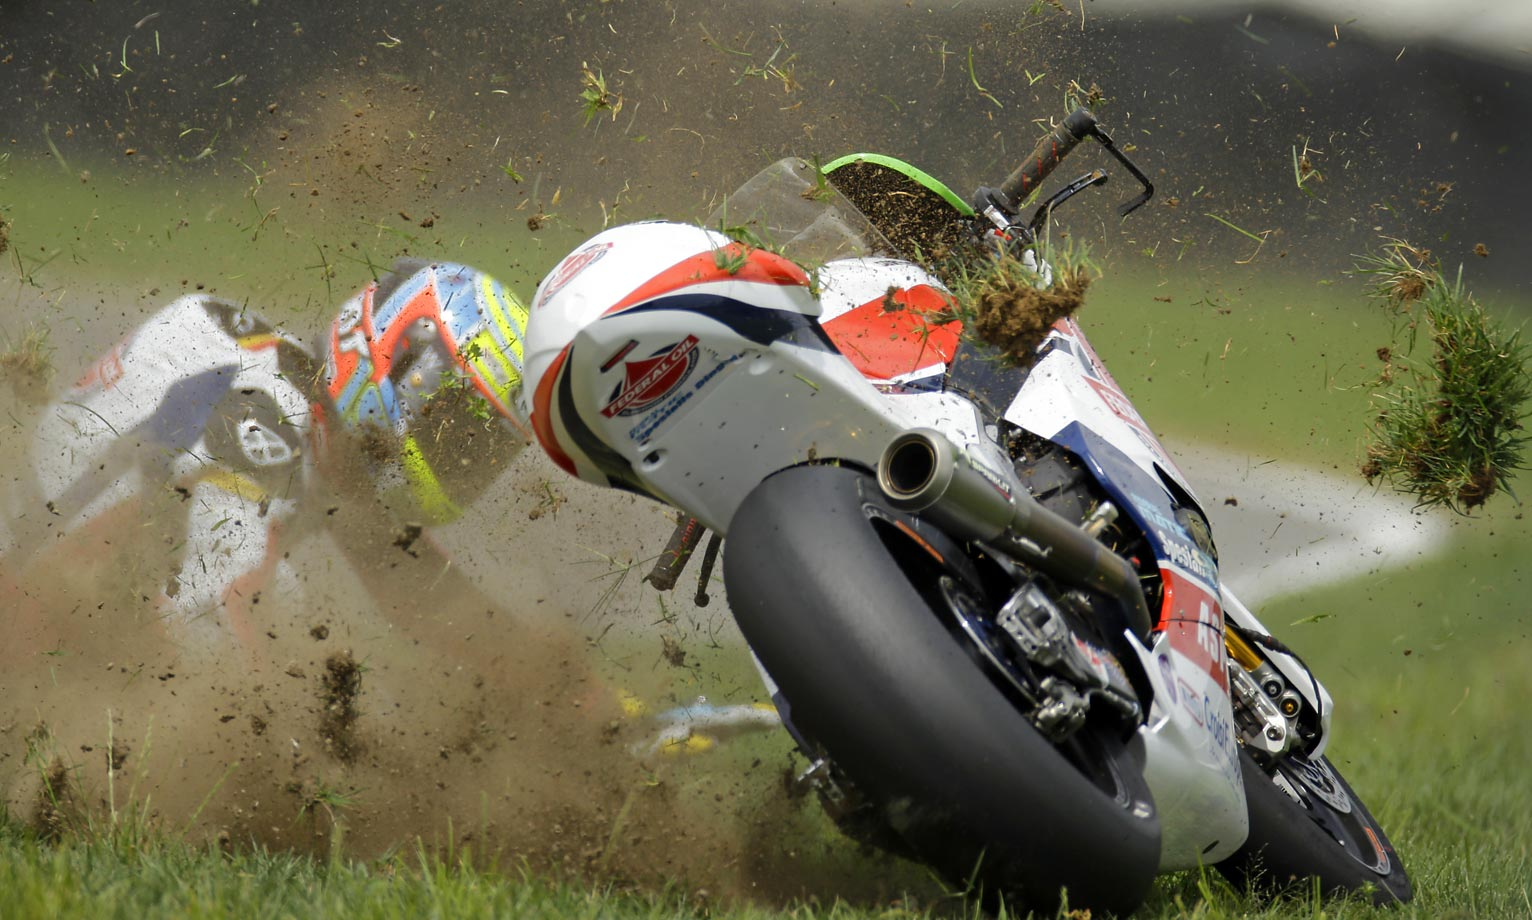 Xavier Simeon's bike keeps going after he crashed at the Indianapolis Moto 2 motorcycle race.